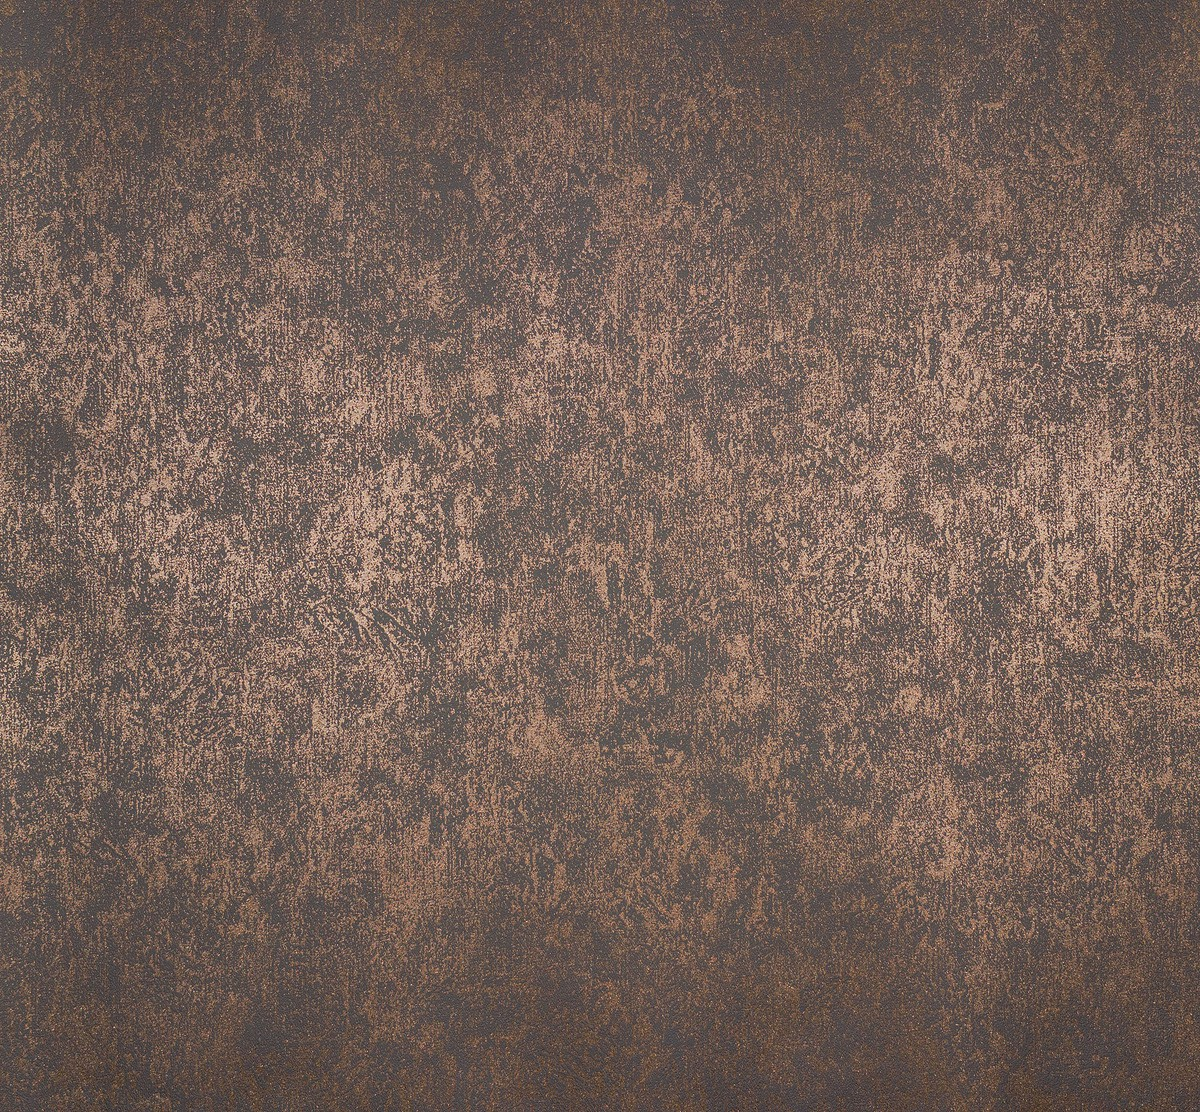 Non woven wallpaper plain bronze grey metallic wallpaper Marburg 1200x1112